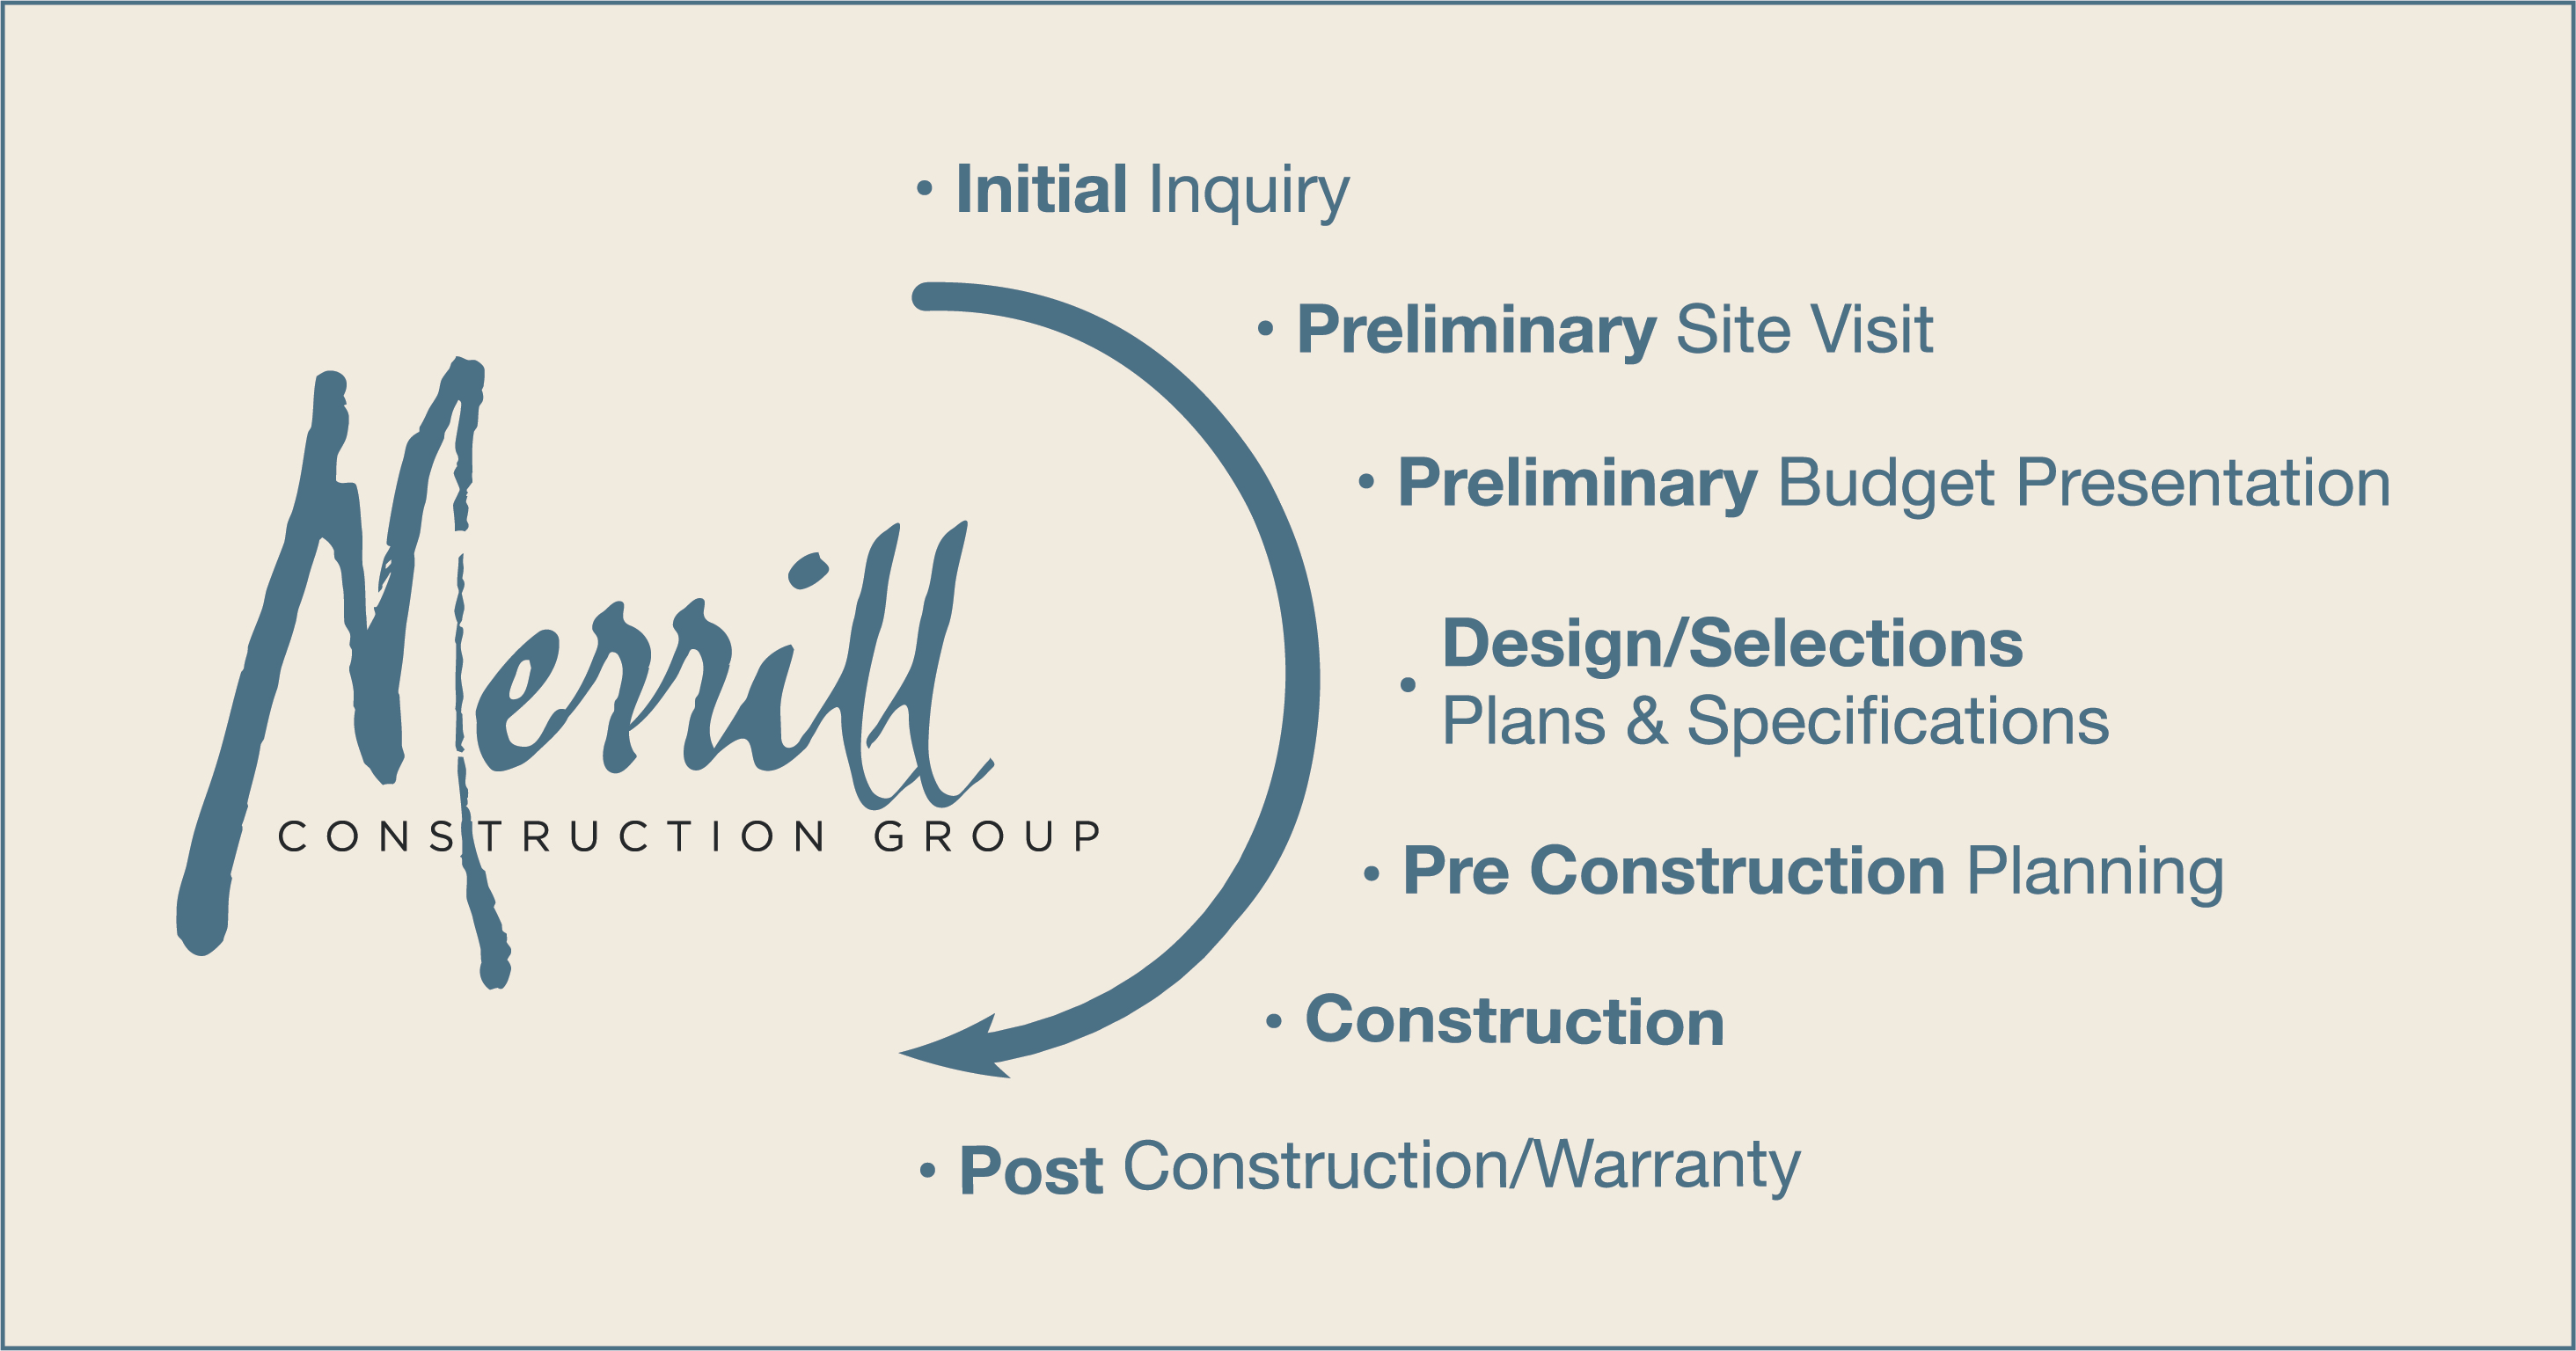 Merrill Construction Group's Process